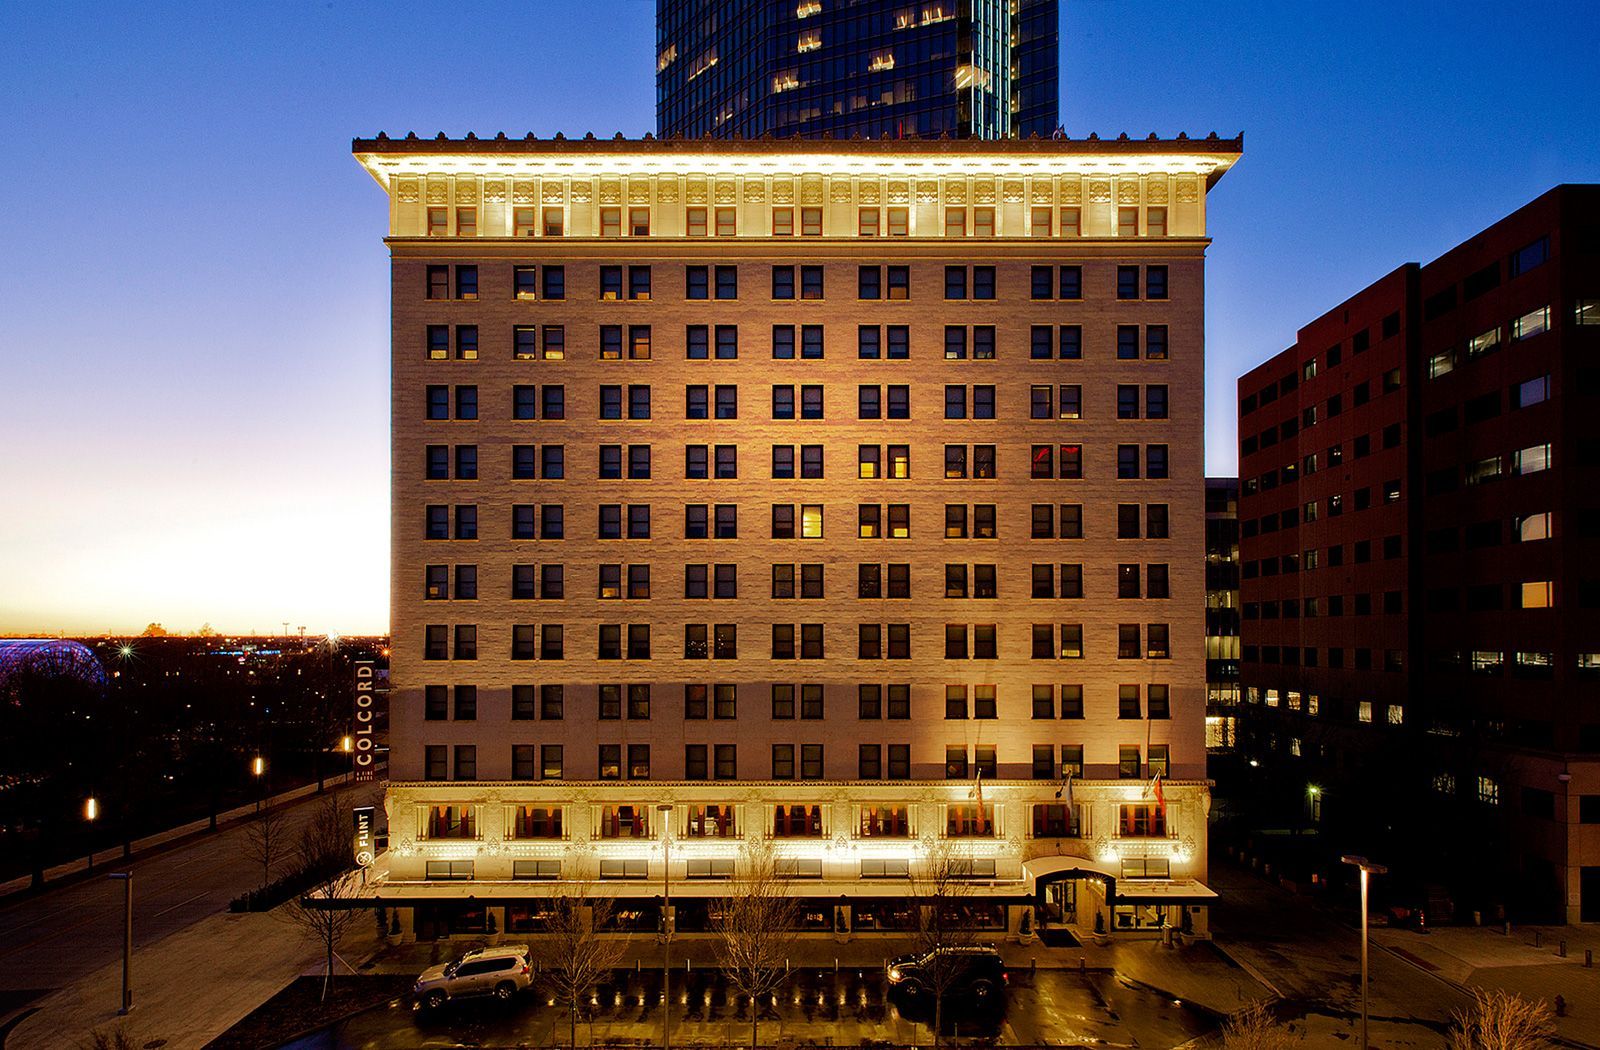 Oklahoma City Ok Situated At The Northeastern Corner Of The Myriad Botanical Gardens The Colcor Oklahoma City Hotels Downtown Oklahoma City Downtown Hotels